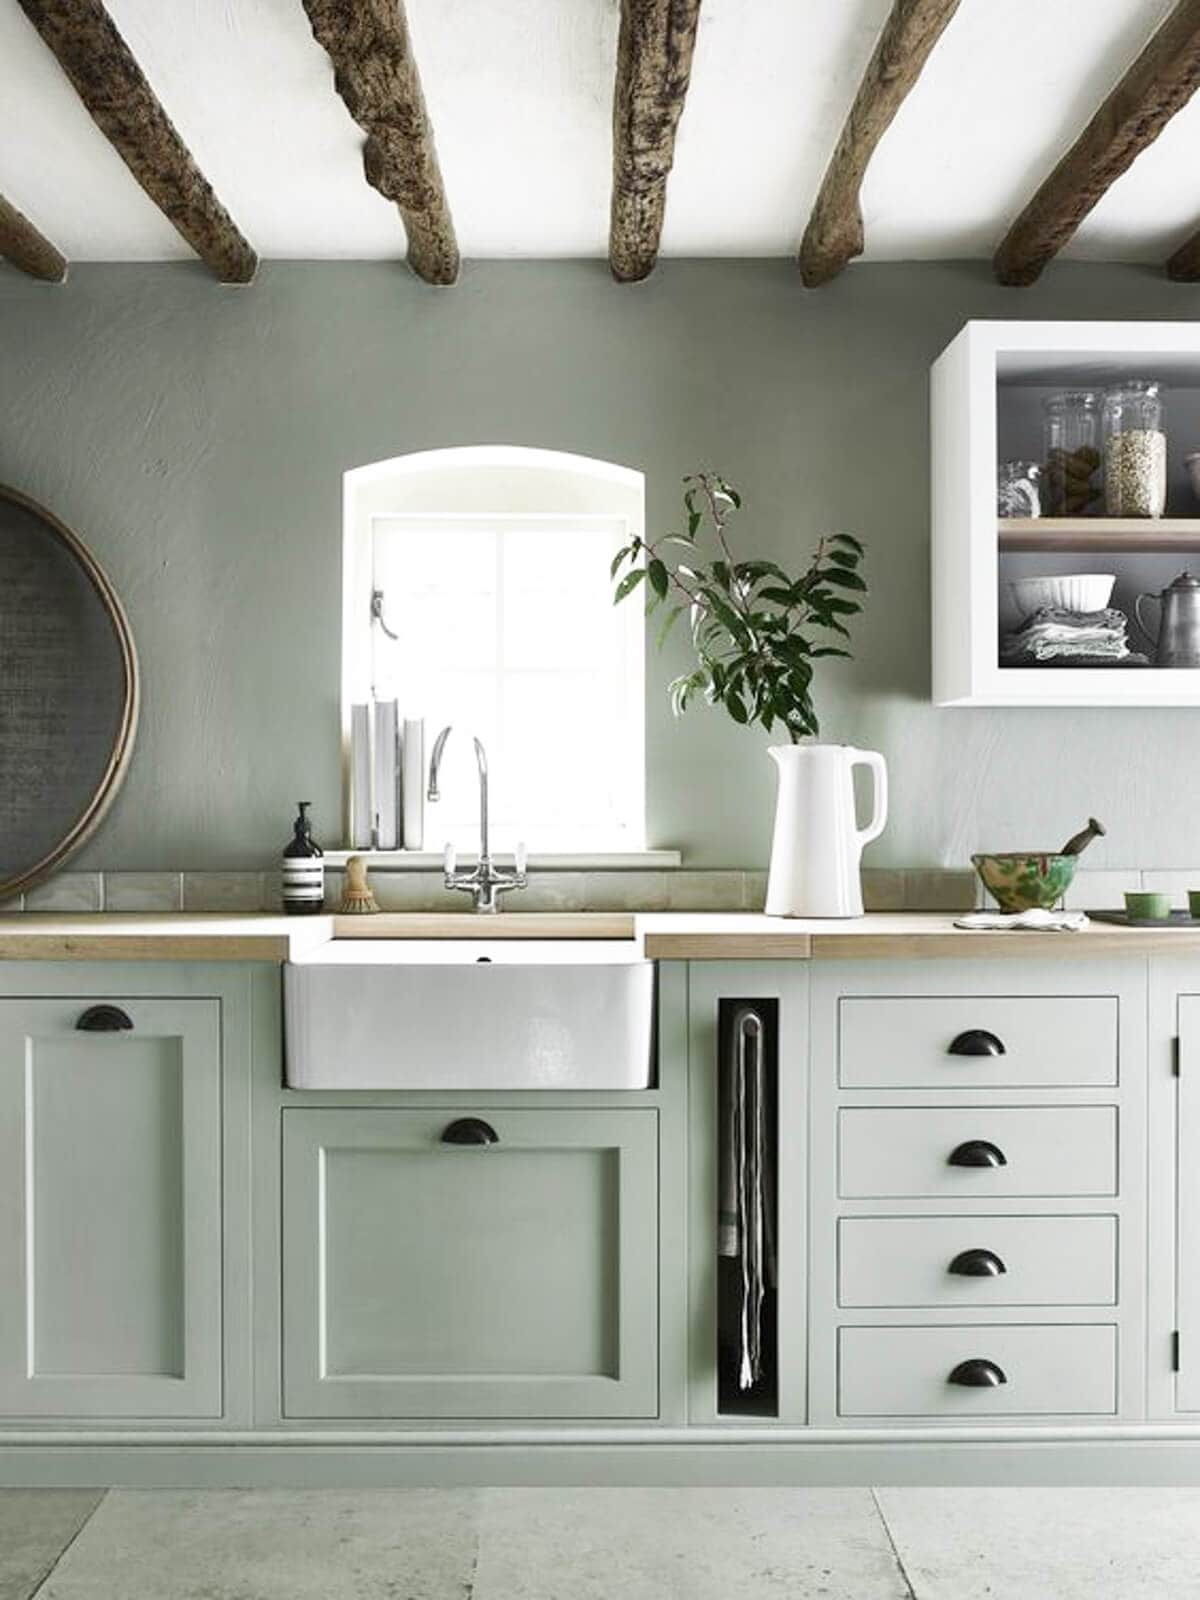 Picture Land Because A Kitchen Kitchen Part A Kitchen A Kitchen Banana Bread A Kitchen Chocolate Cake Big News Today houzz-02 A Cozy Kitchen